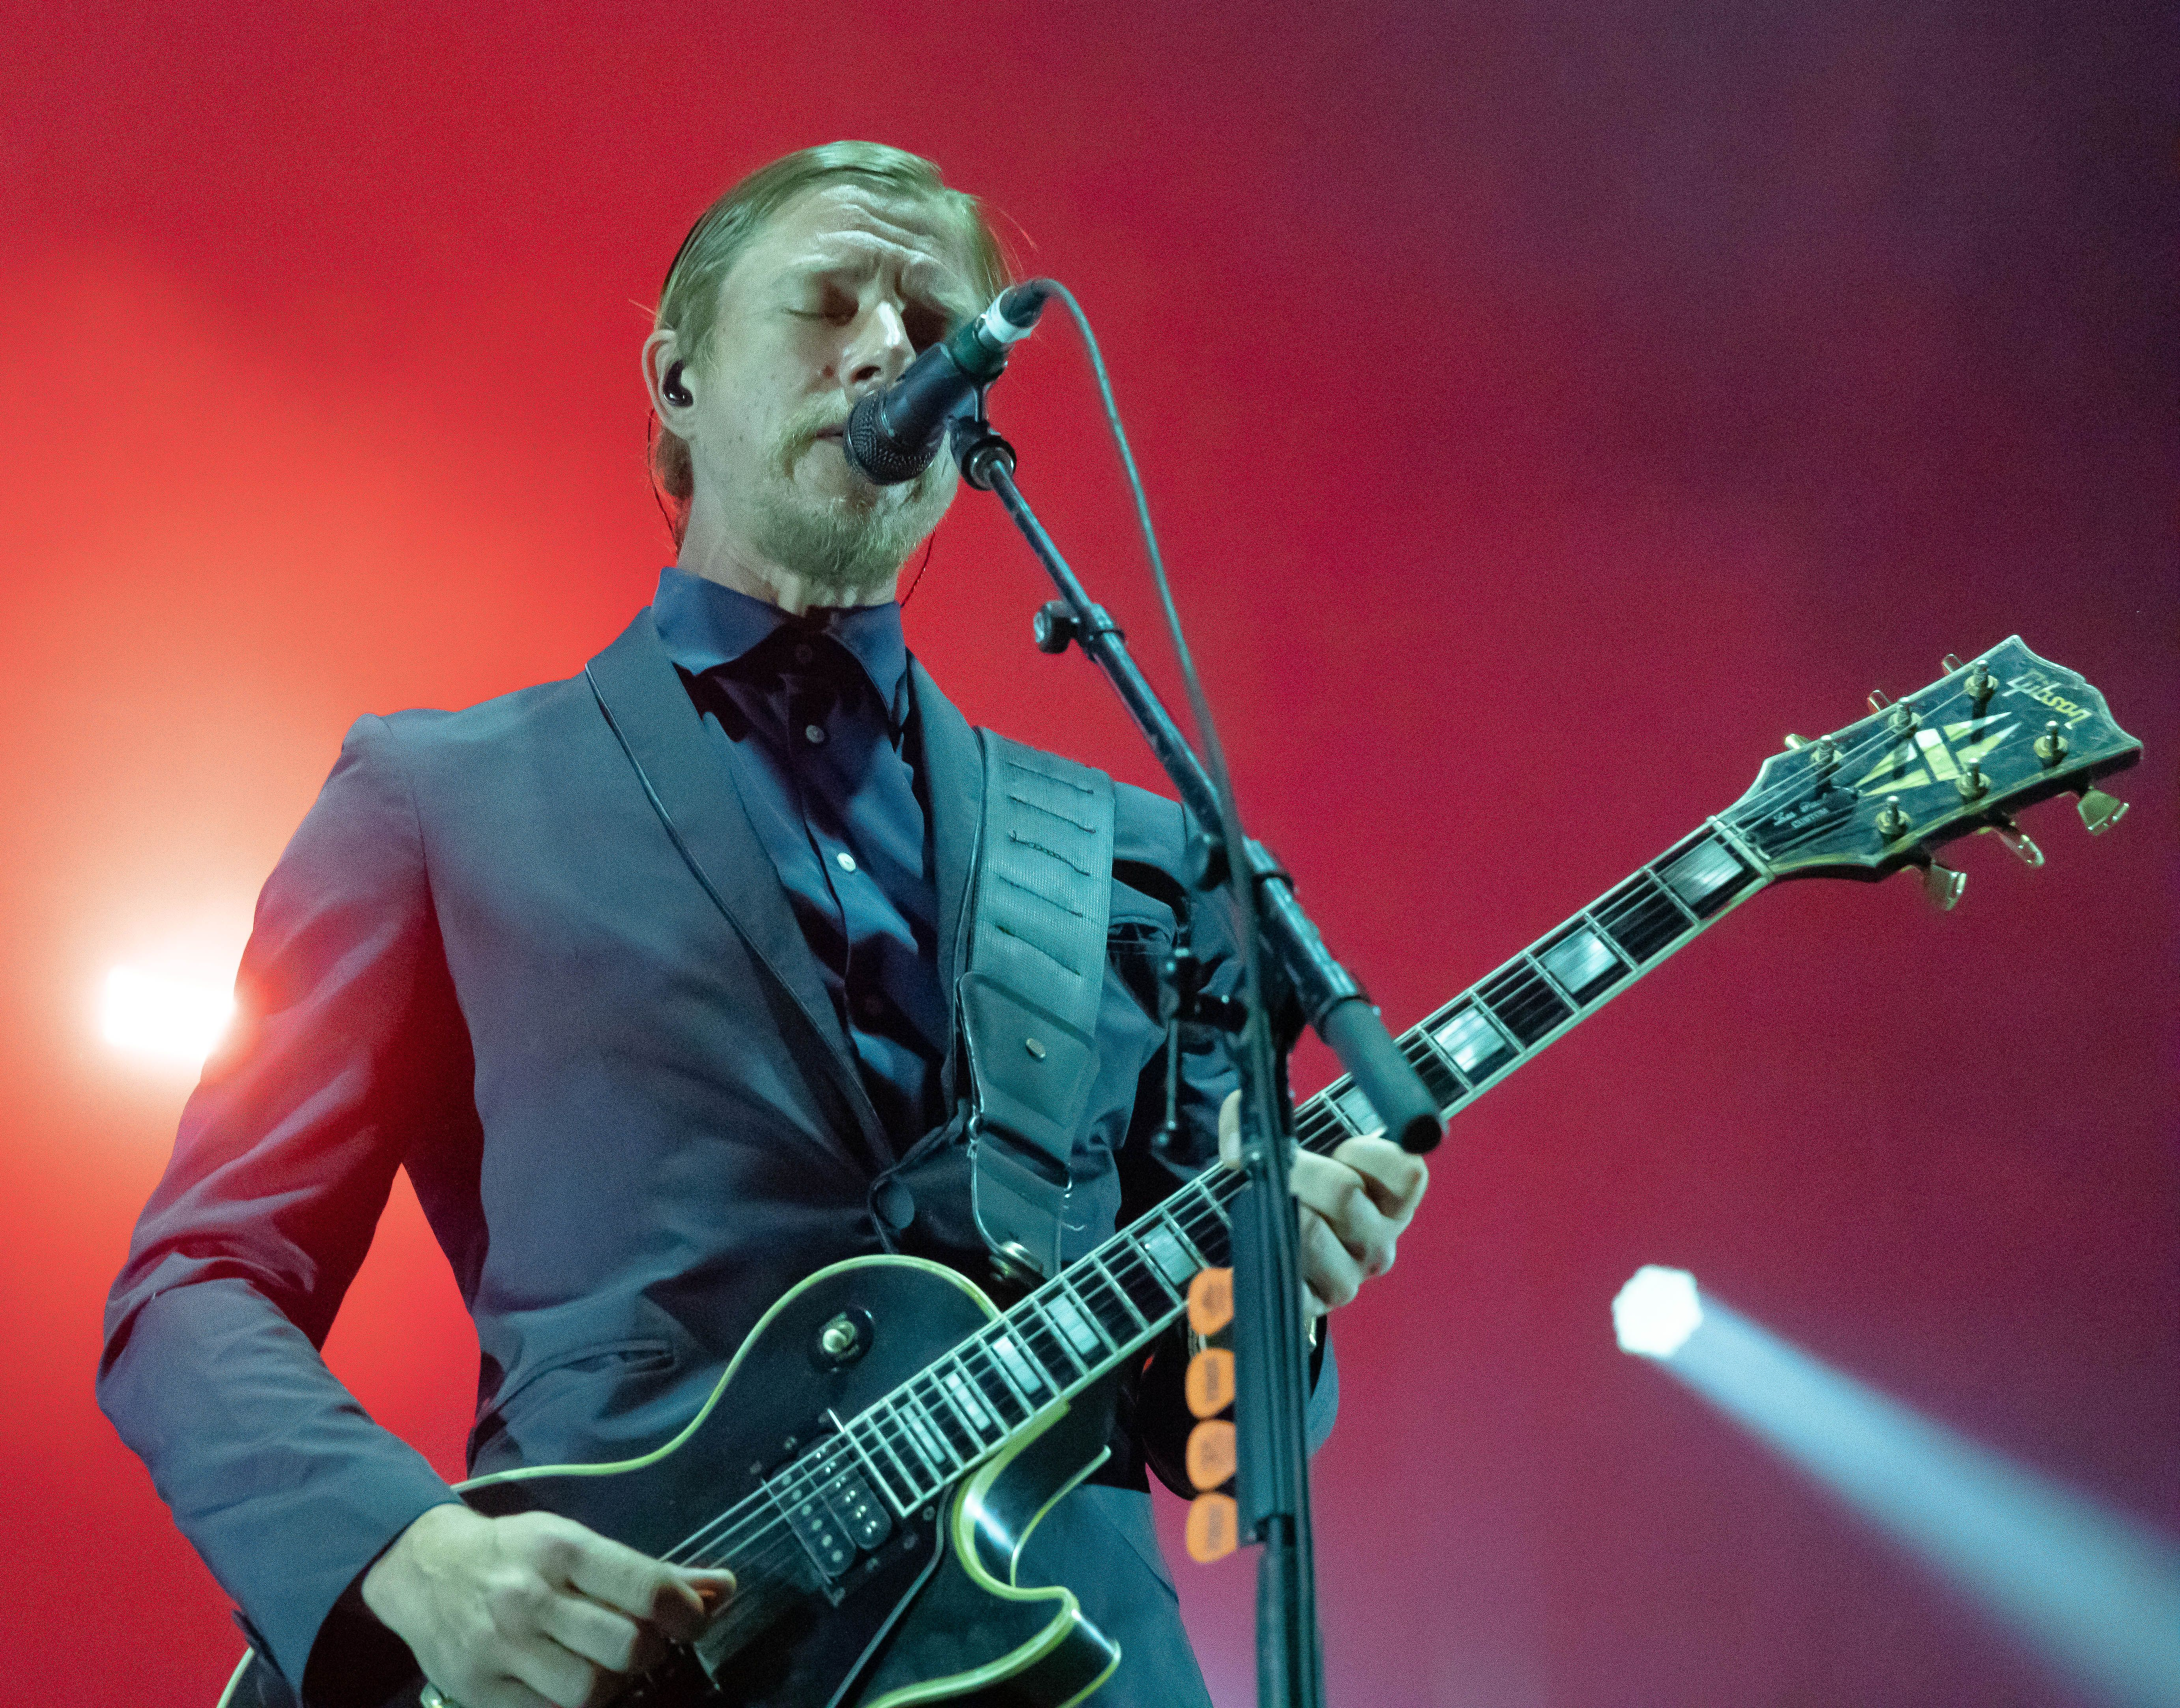 Interpol, photo by Bruce, under CC 2.0